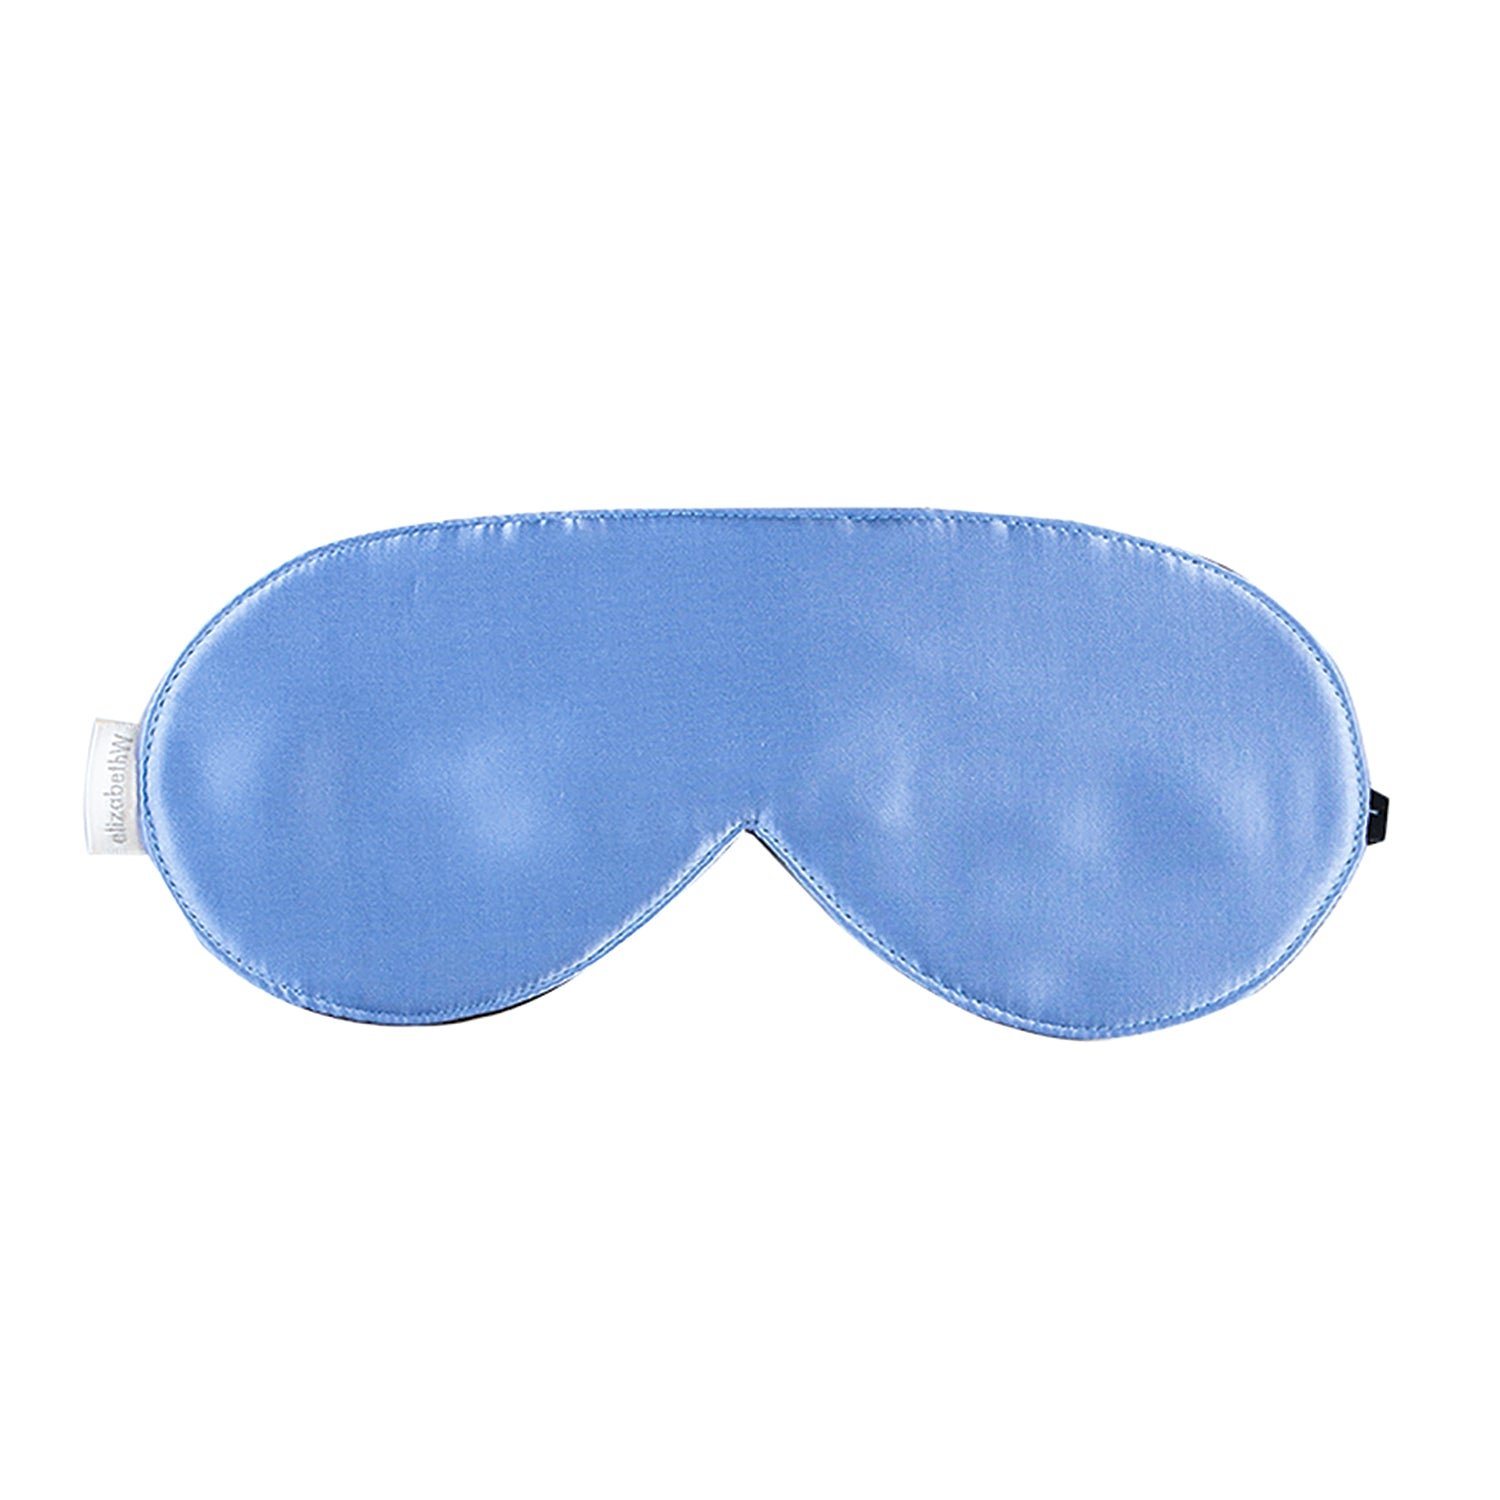 Periwinkle Sleep Mask